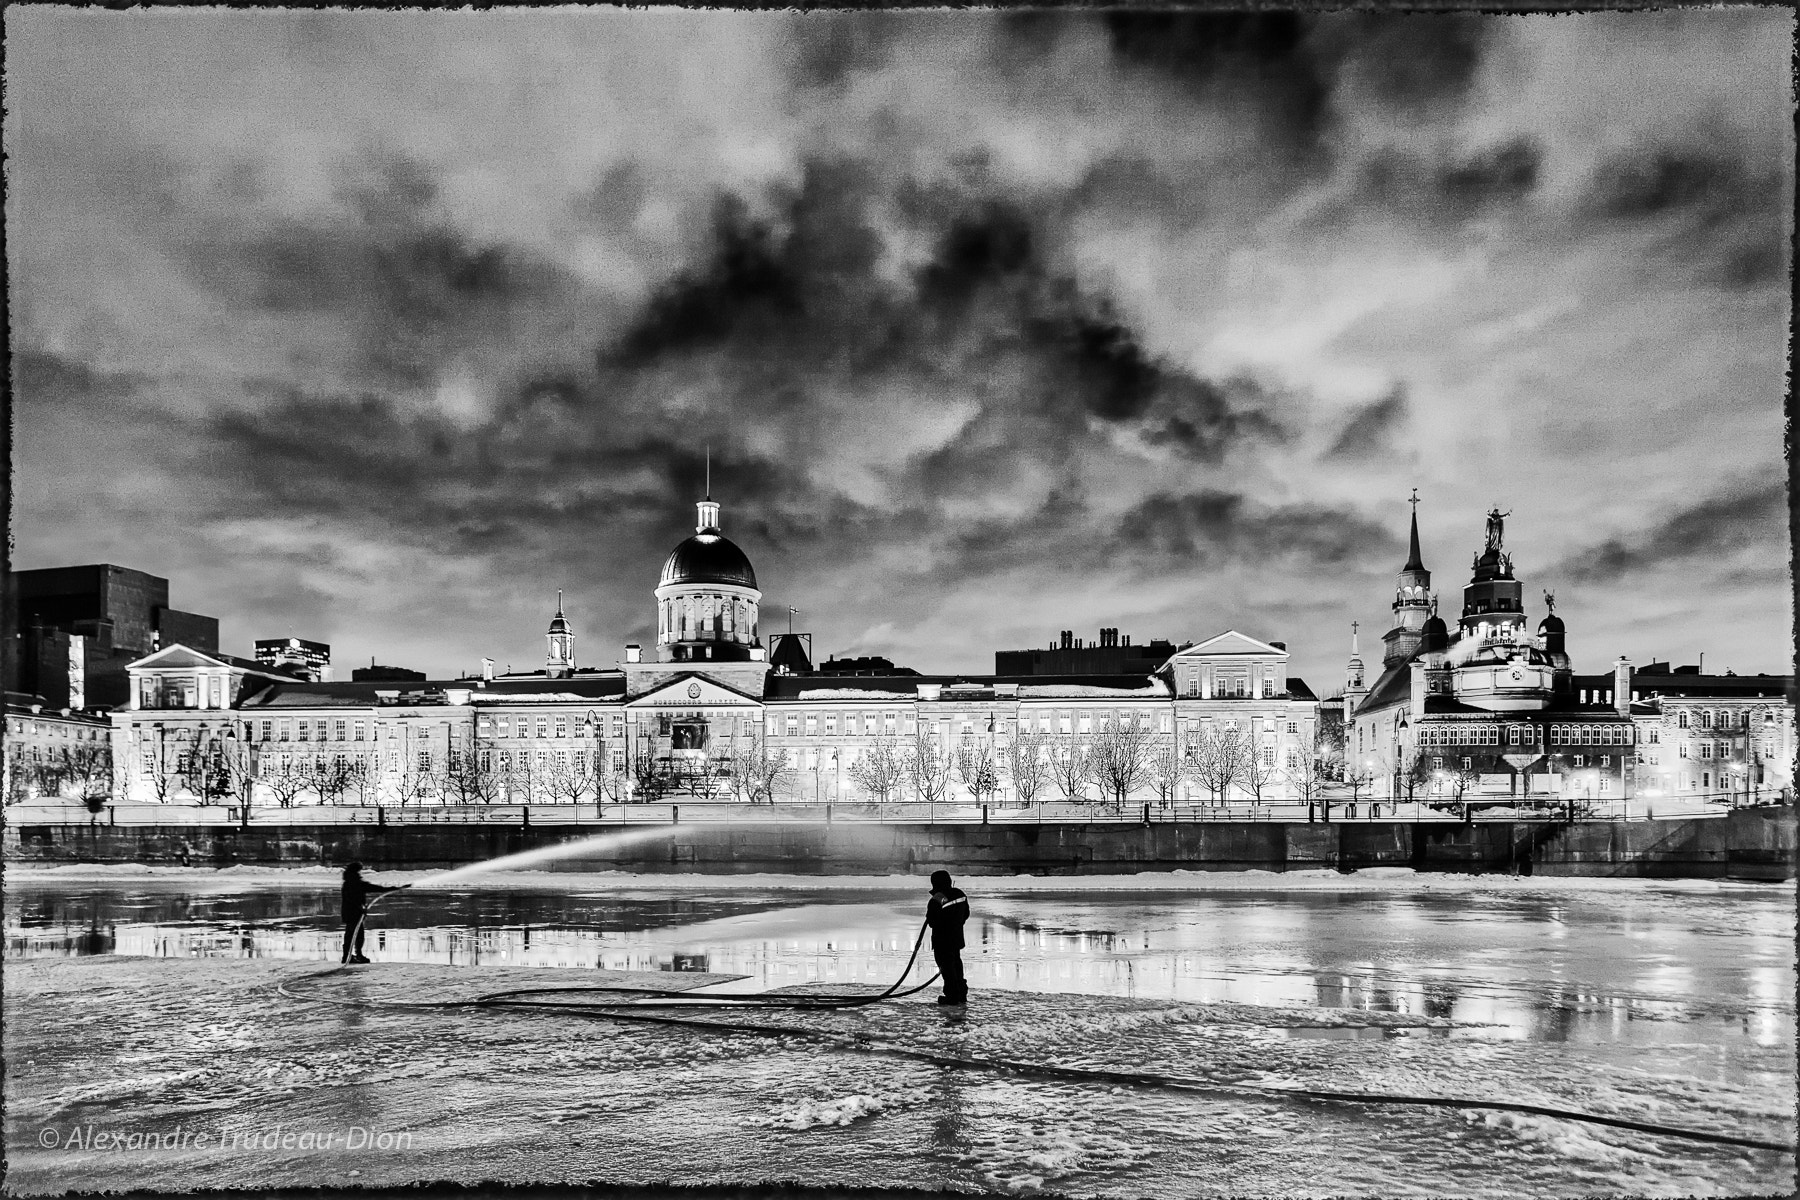 Photograph Watering the ice by Alexandre Trudeau-Dion on 500px